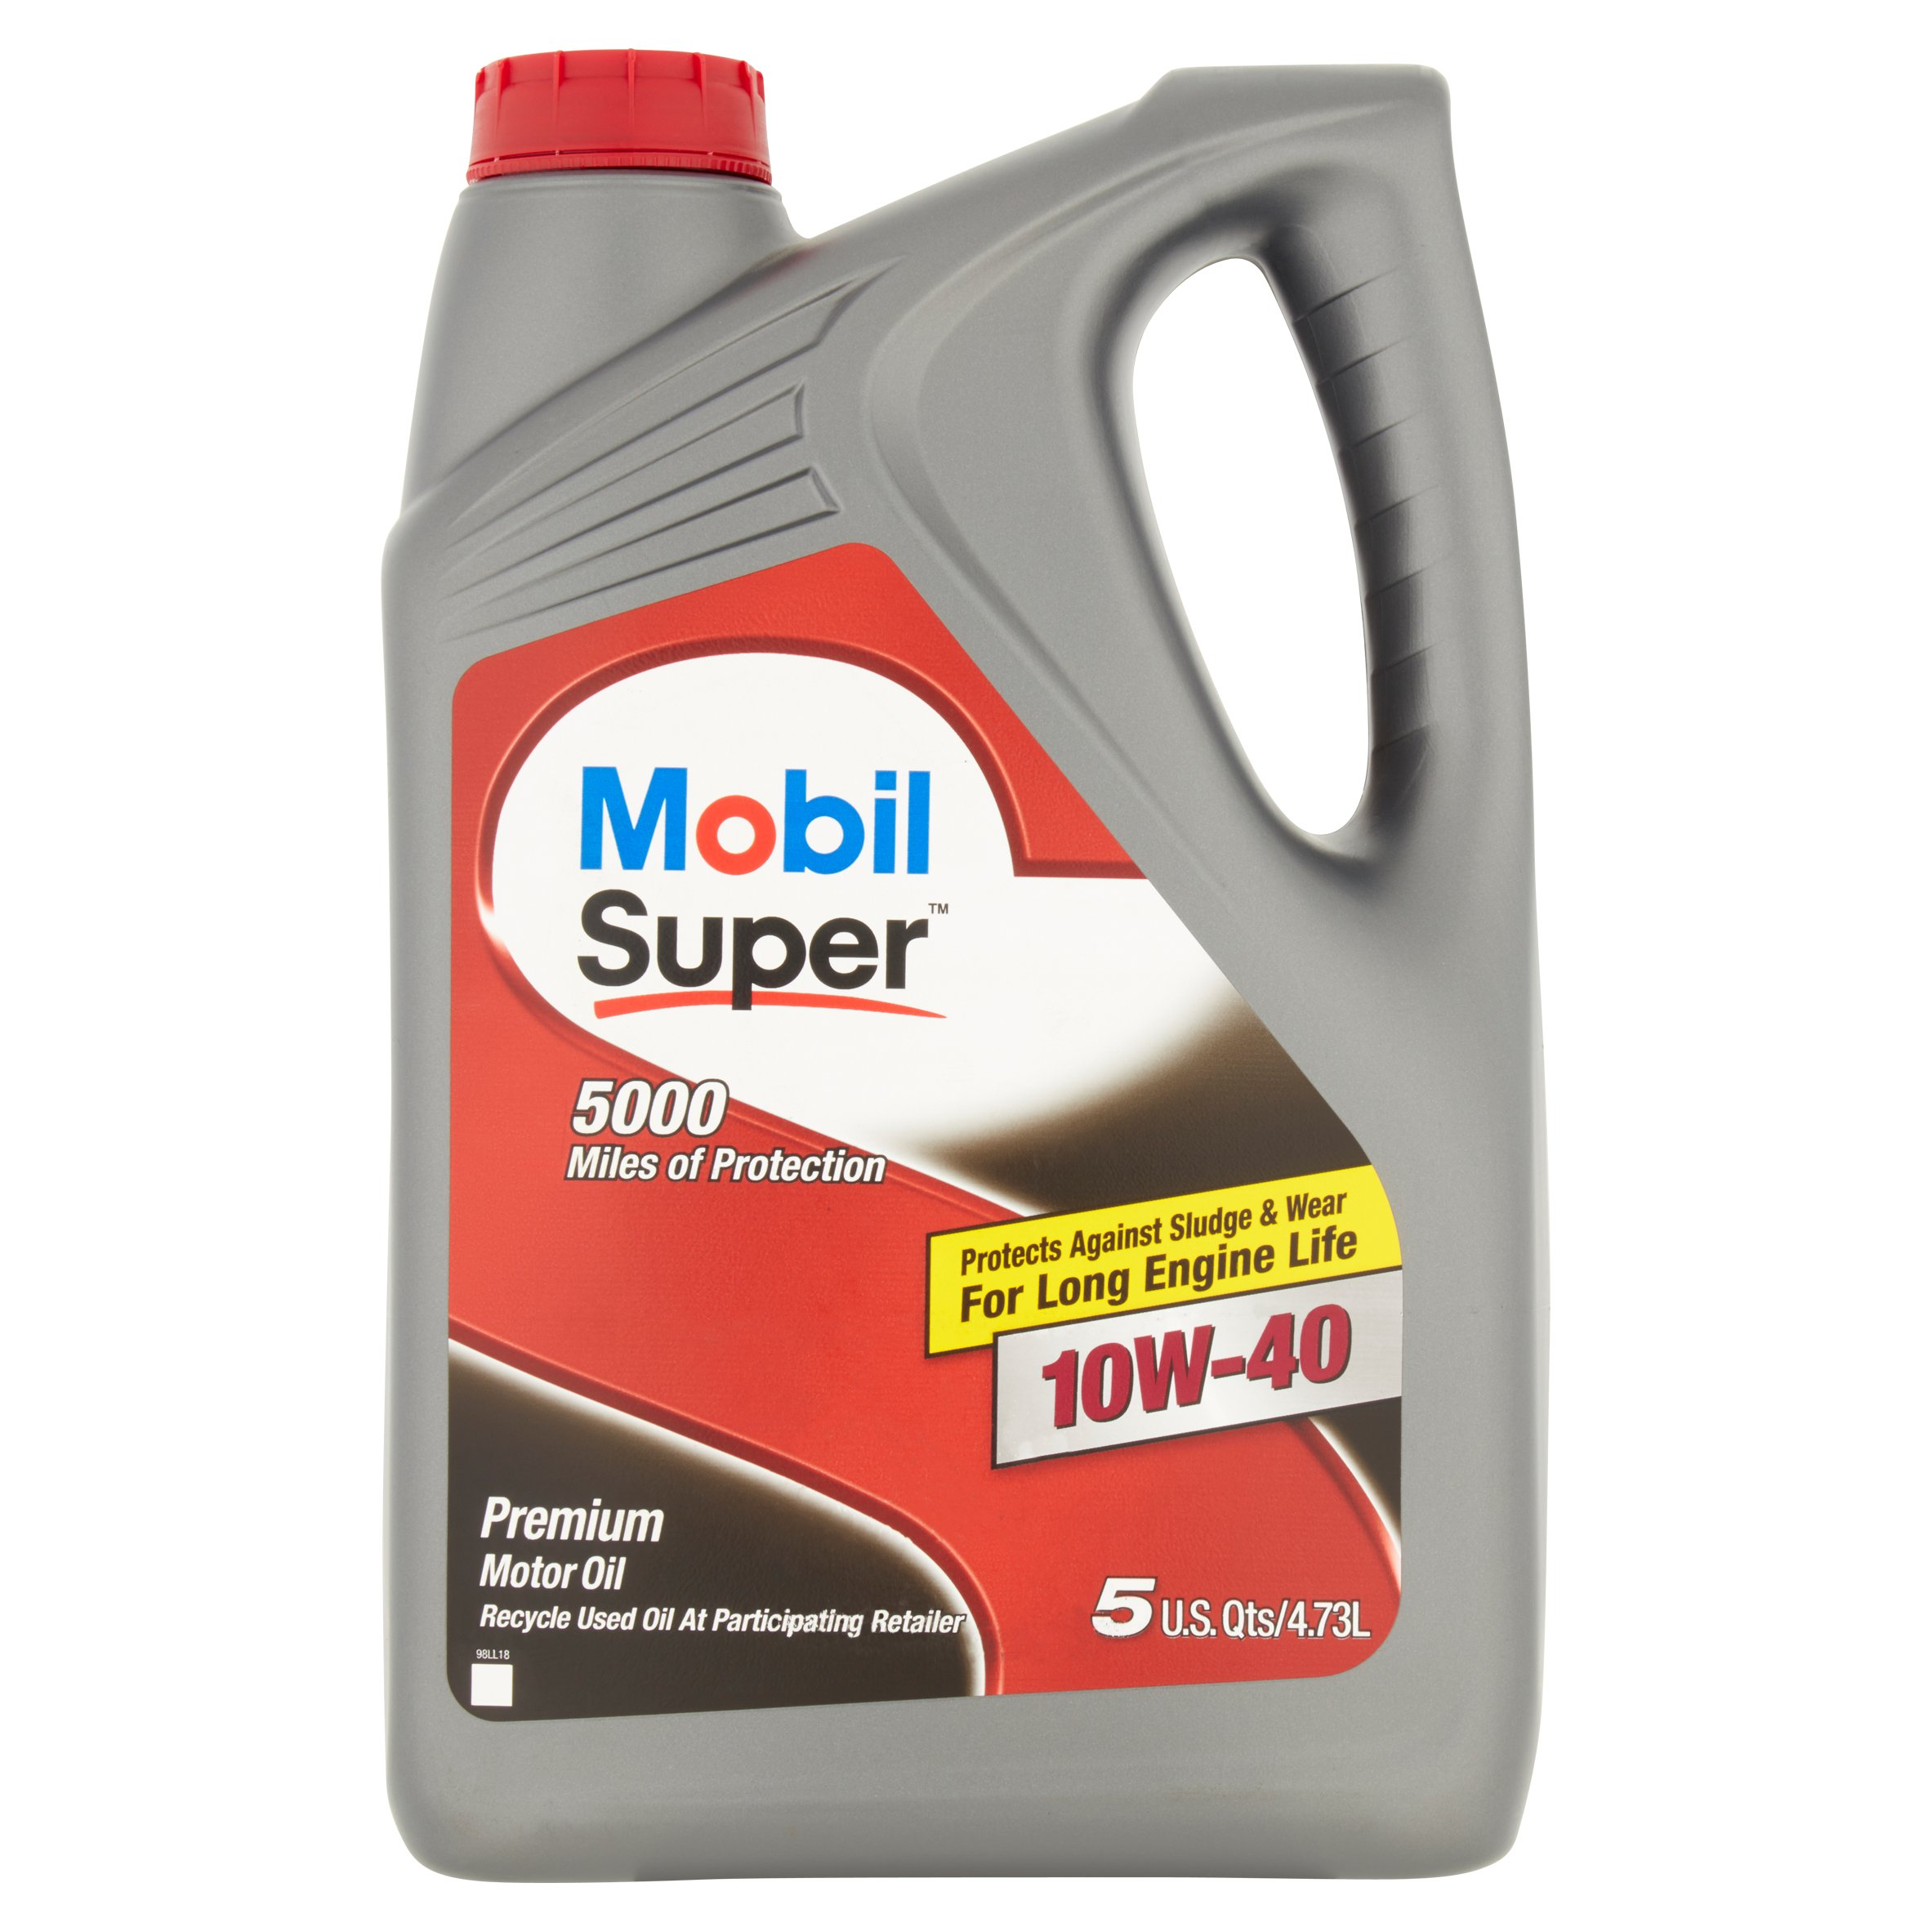 Mobil Super 10W-40 Conventional Motor Oil, 5 qt